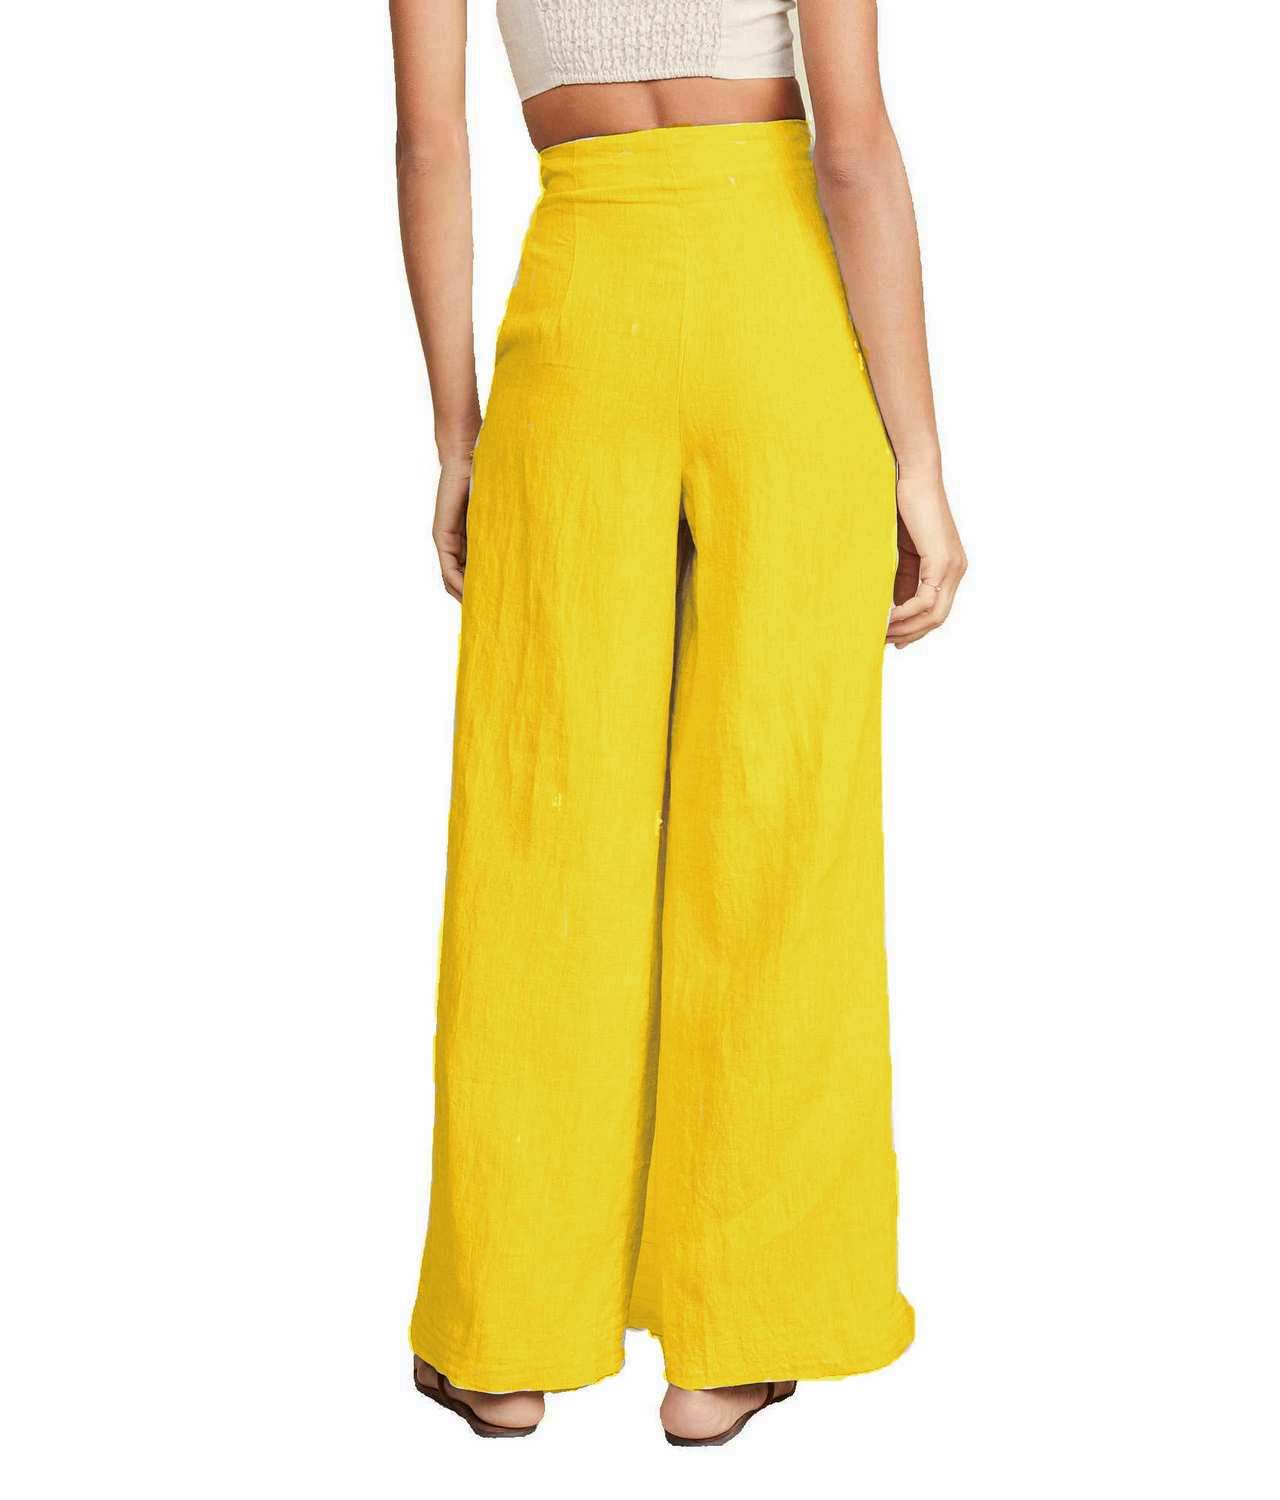 Regular Fit Bootcut Trousers in Mustard